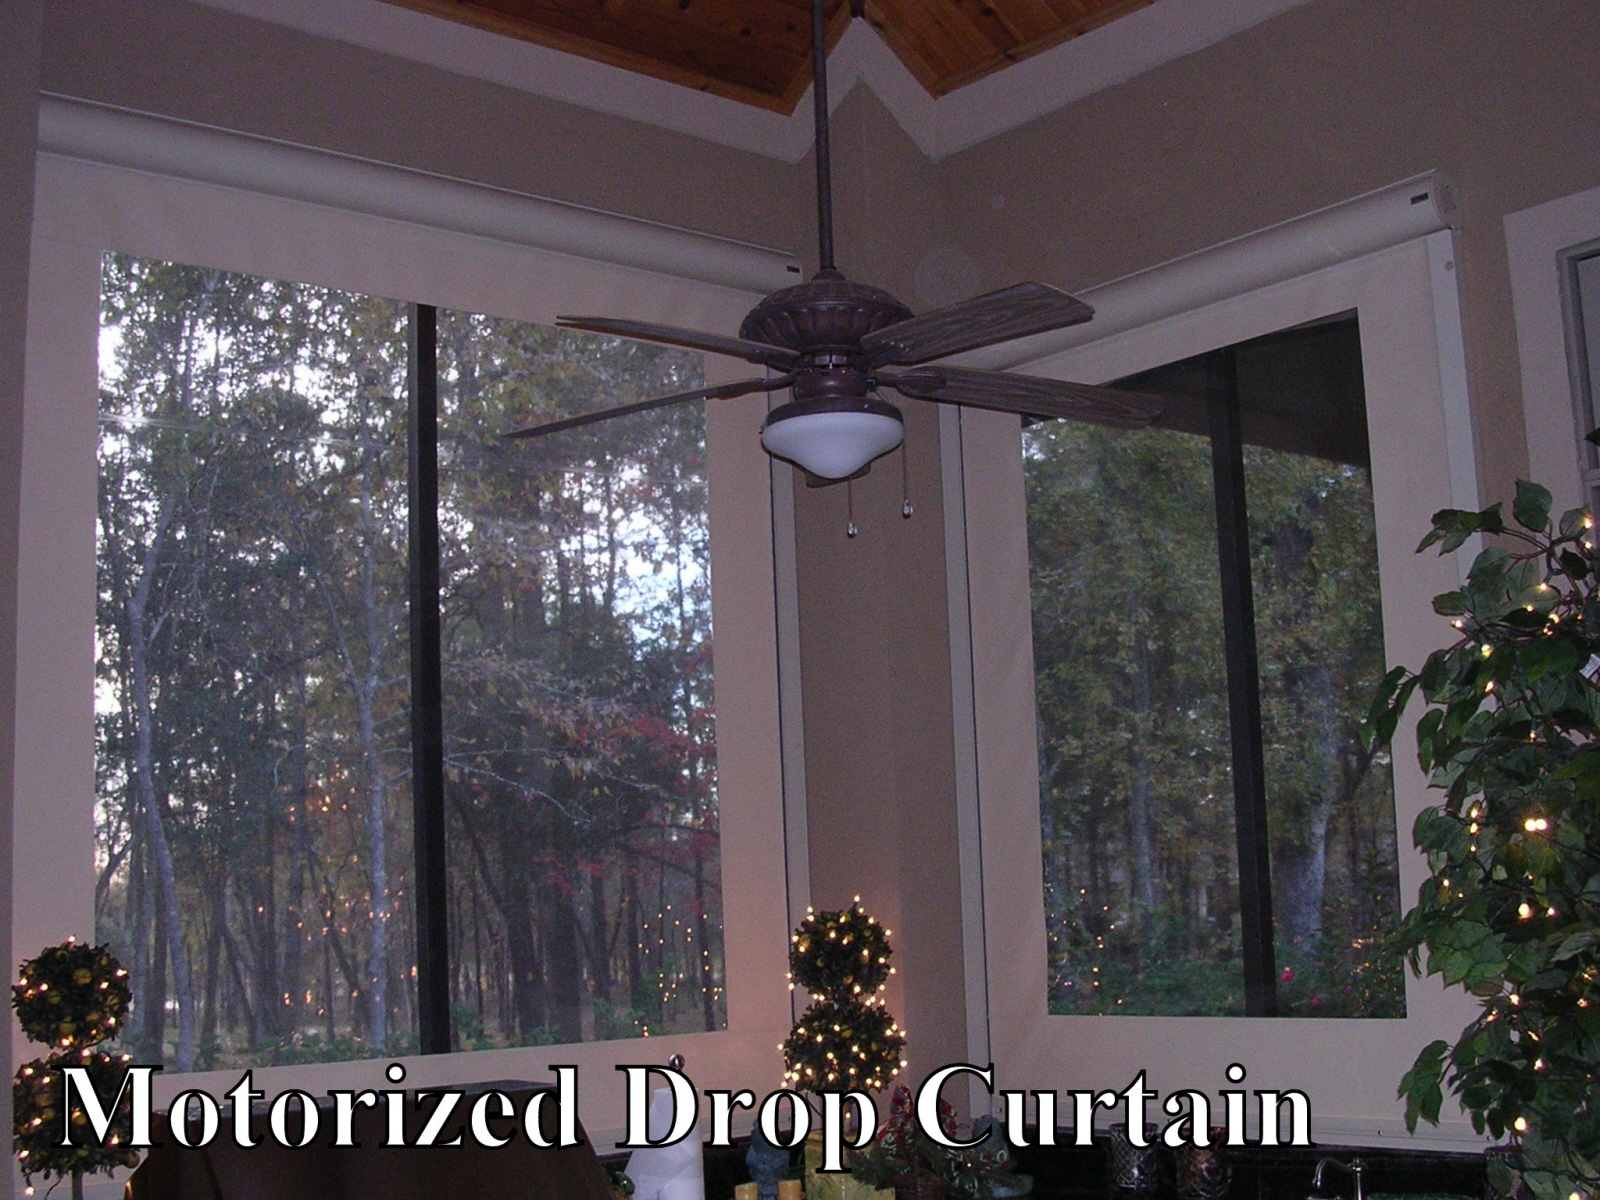 conroe awning and screen video image gallery proview